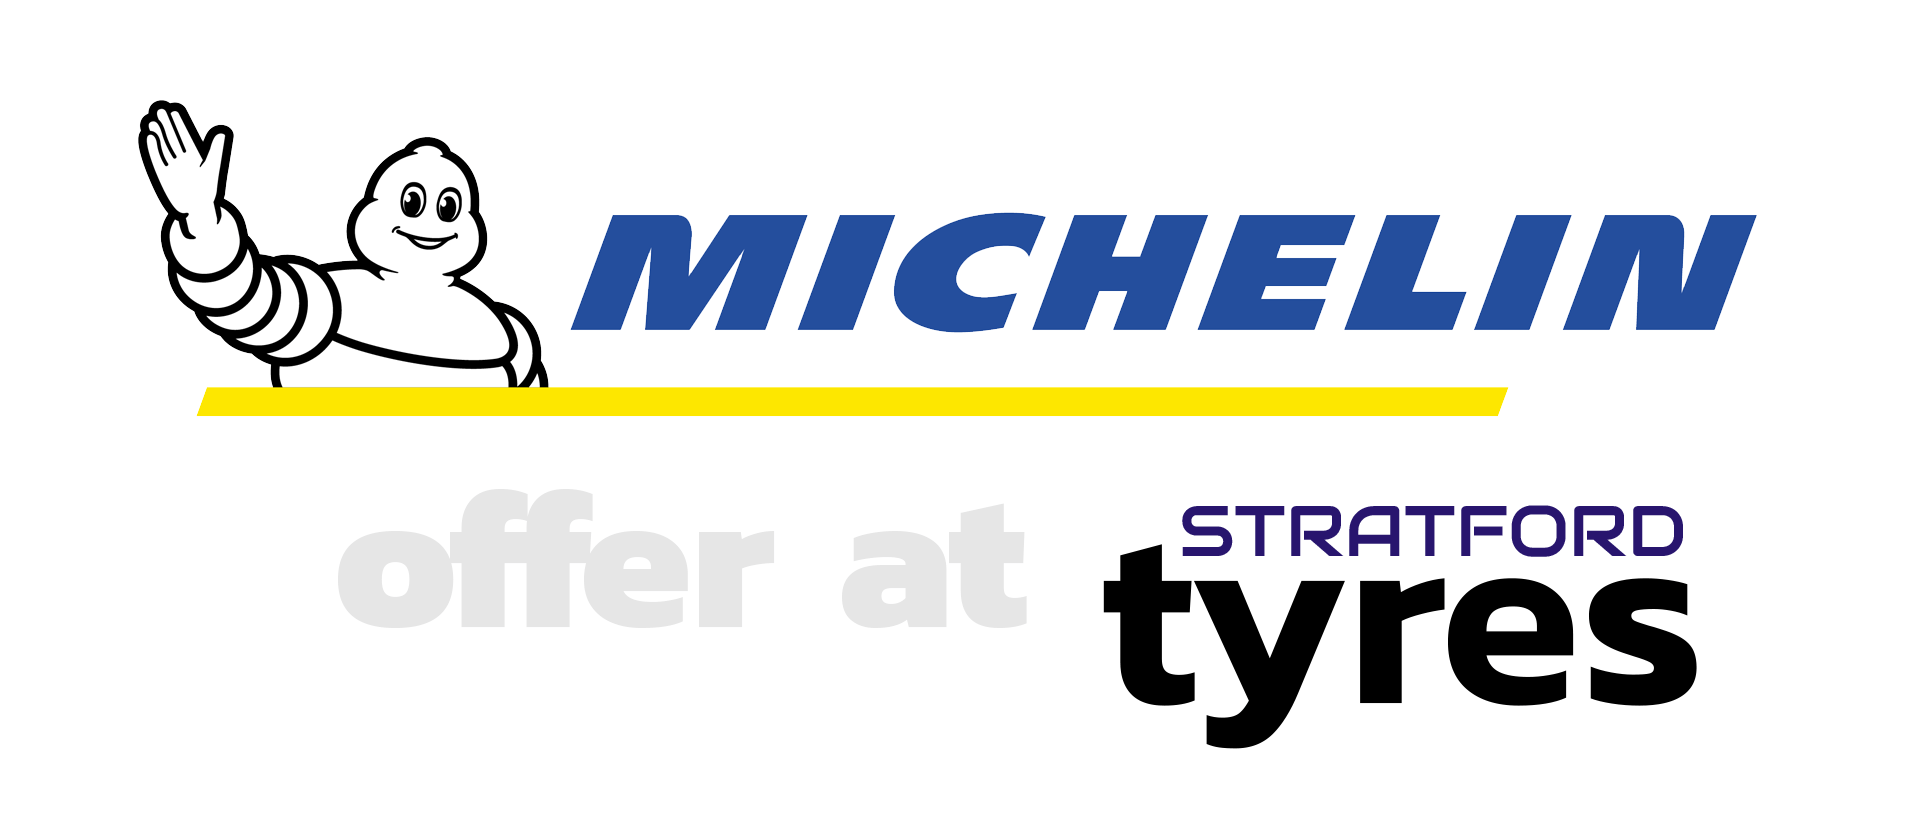 Buy 2 or 4 Michelin tyres and claim money on your prepaid visa card!